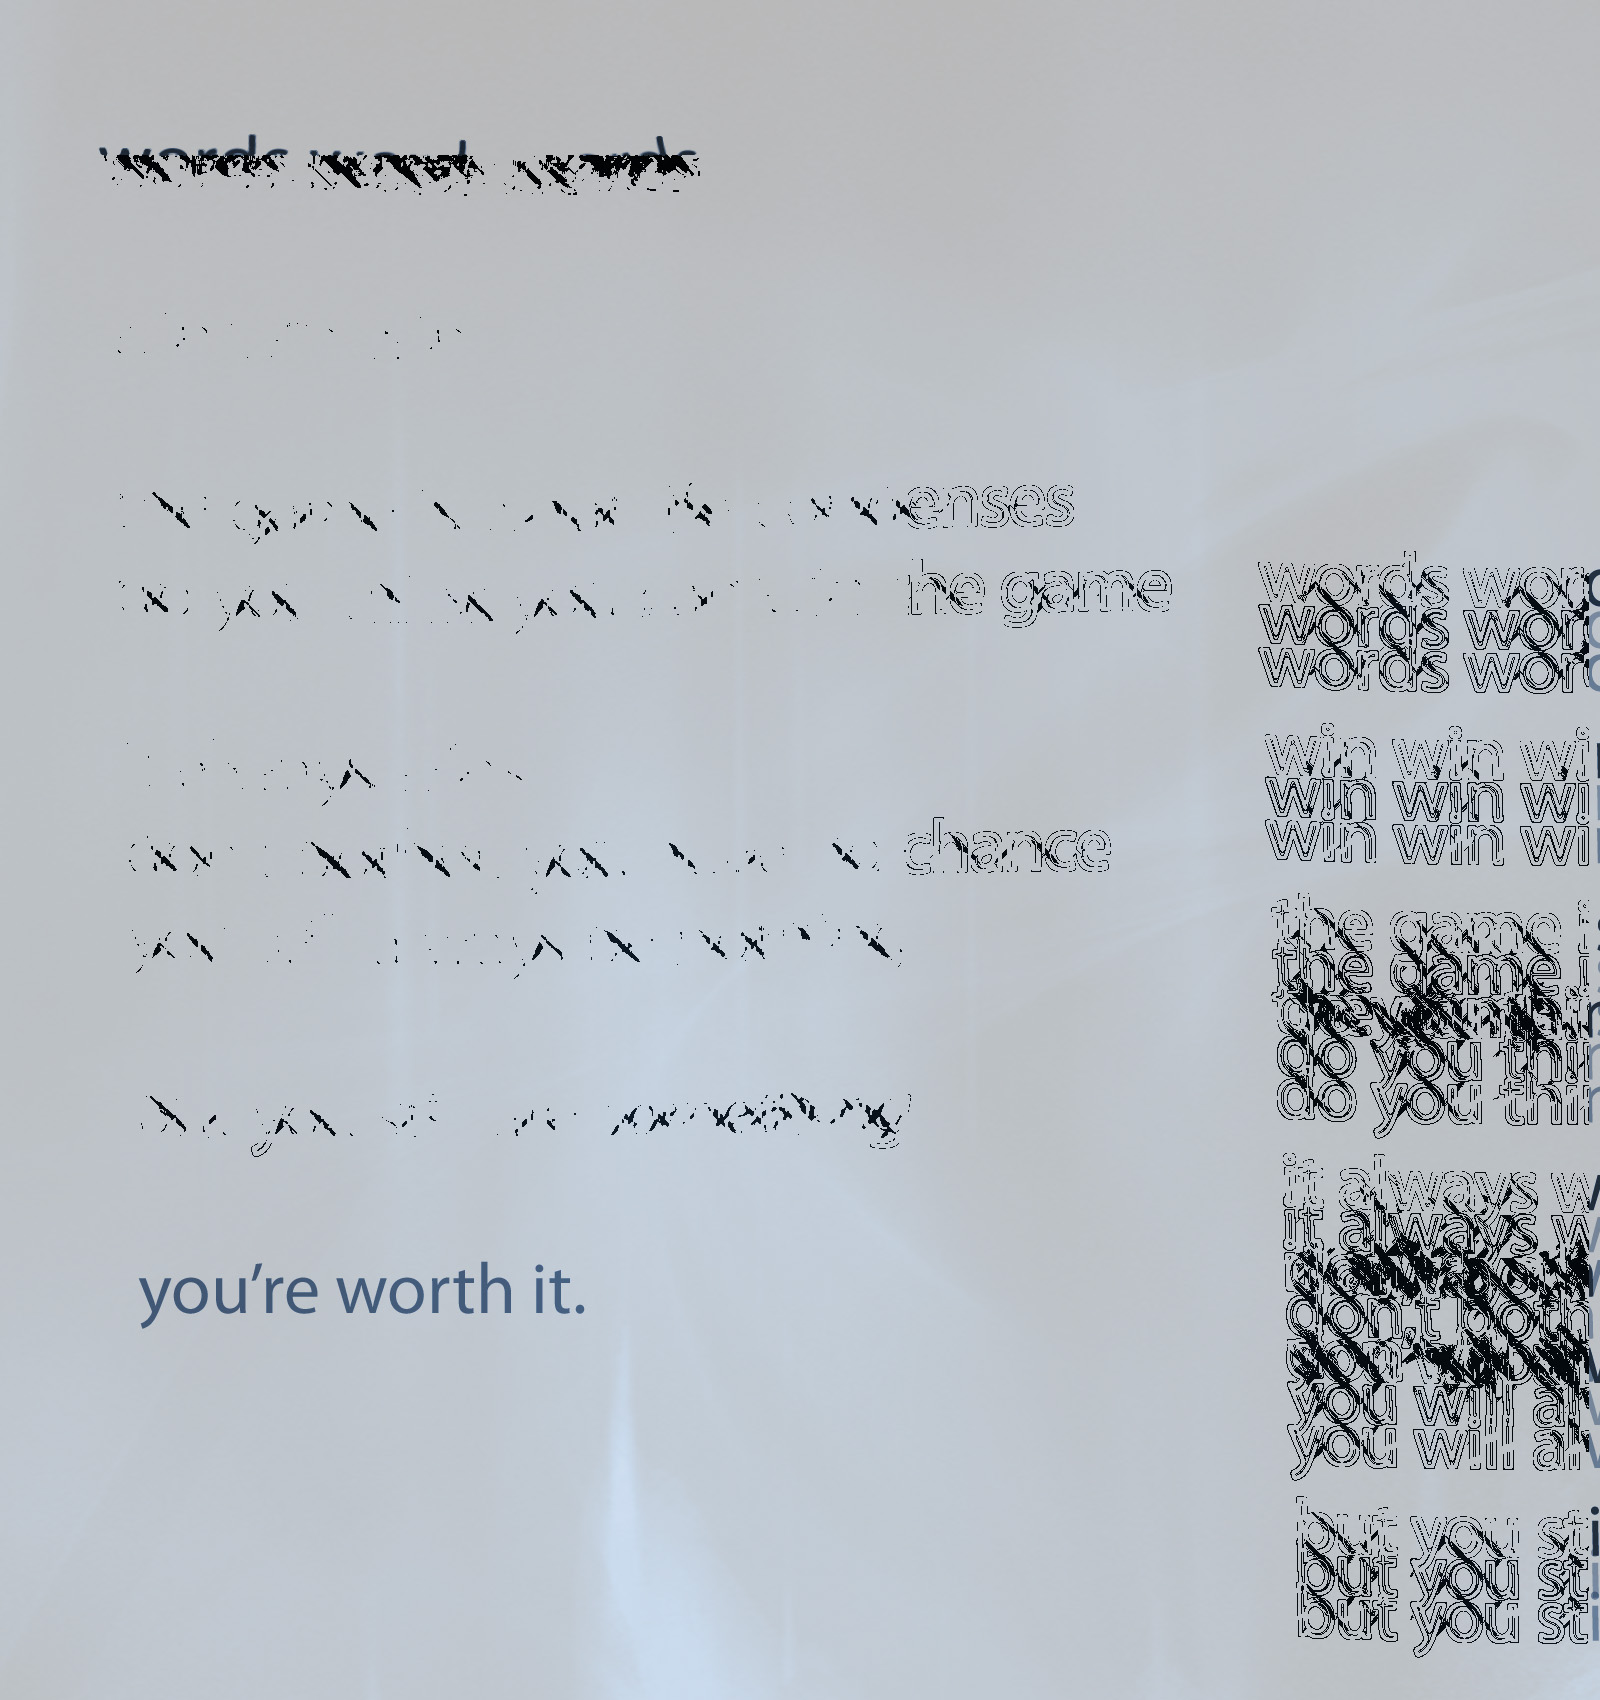 You're worth it.